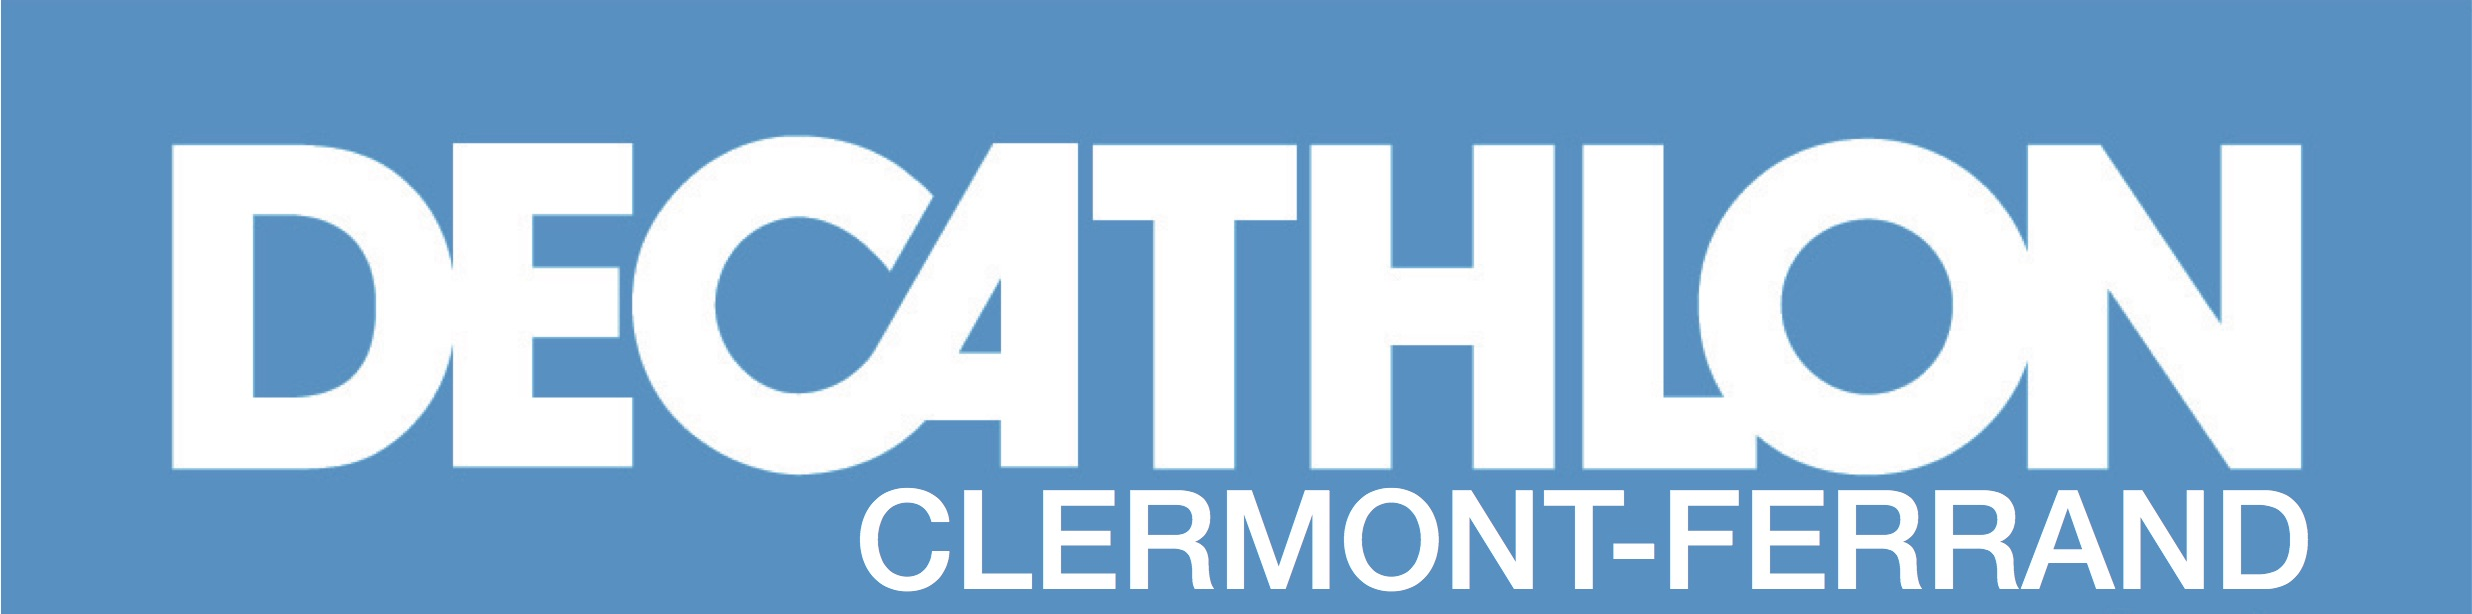 LOGO DECATHLON CLERMONT